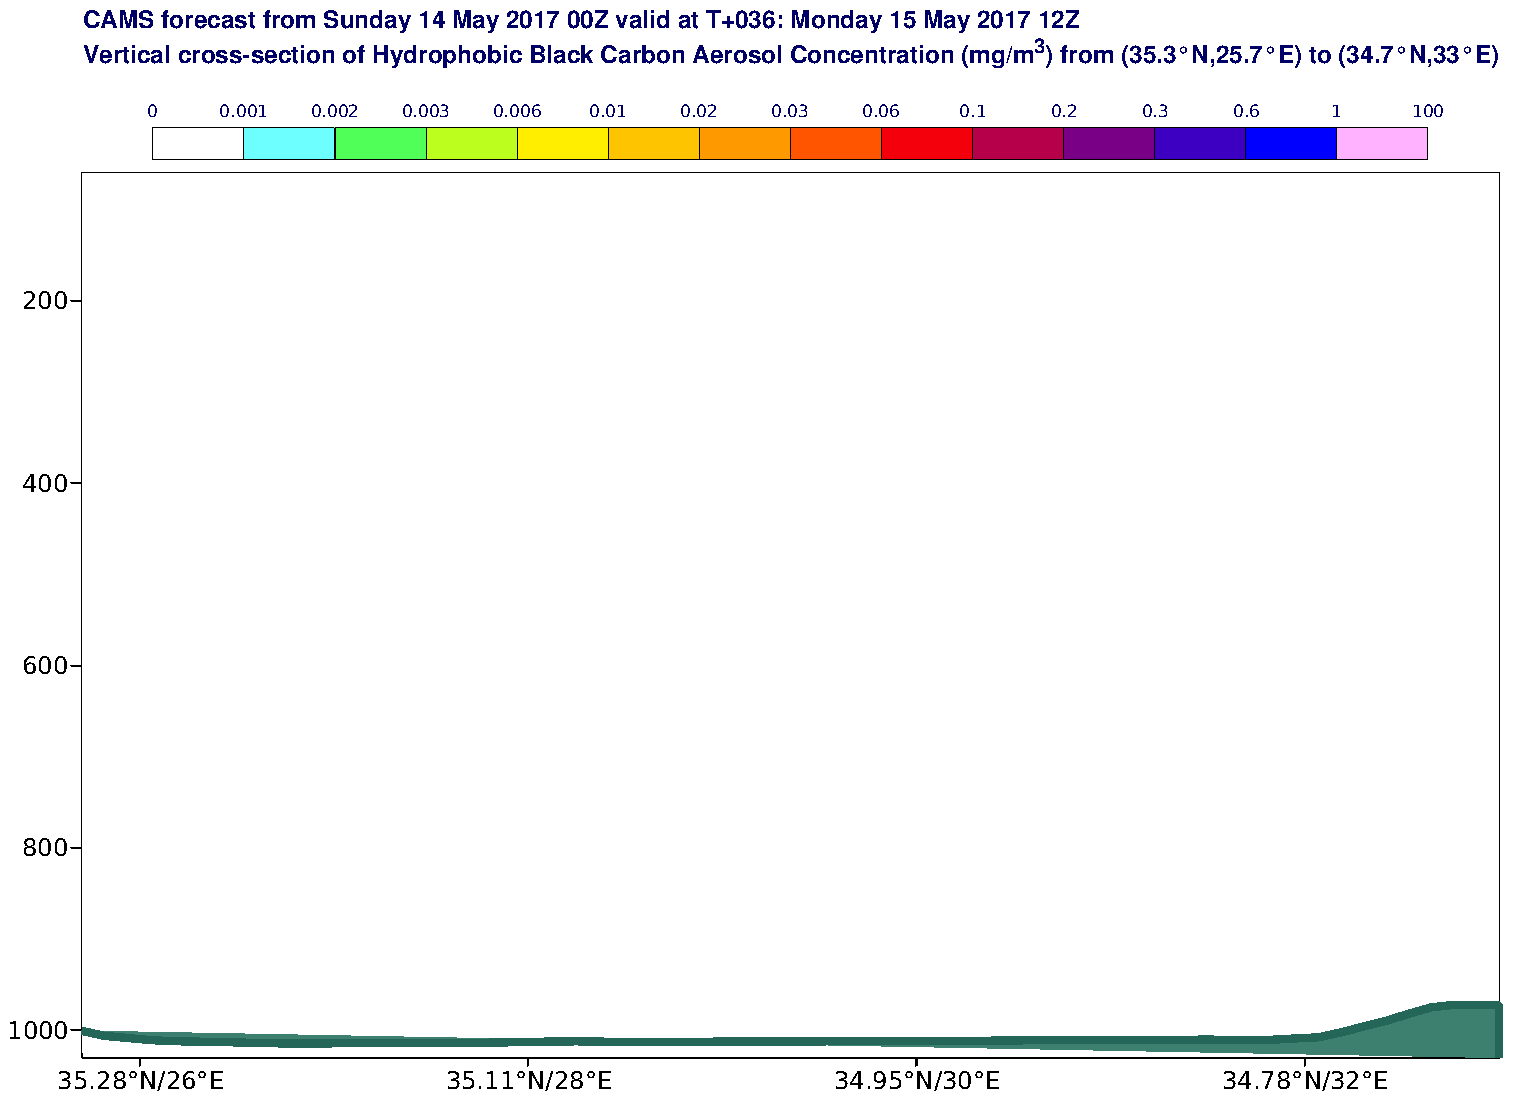 Vertical cross-section of Hydrophobic Black Carbon Aerosol Concentration (mg/m3) valid at T36 - 2017-05-15 12:00